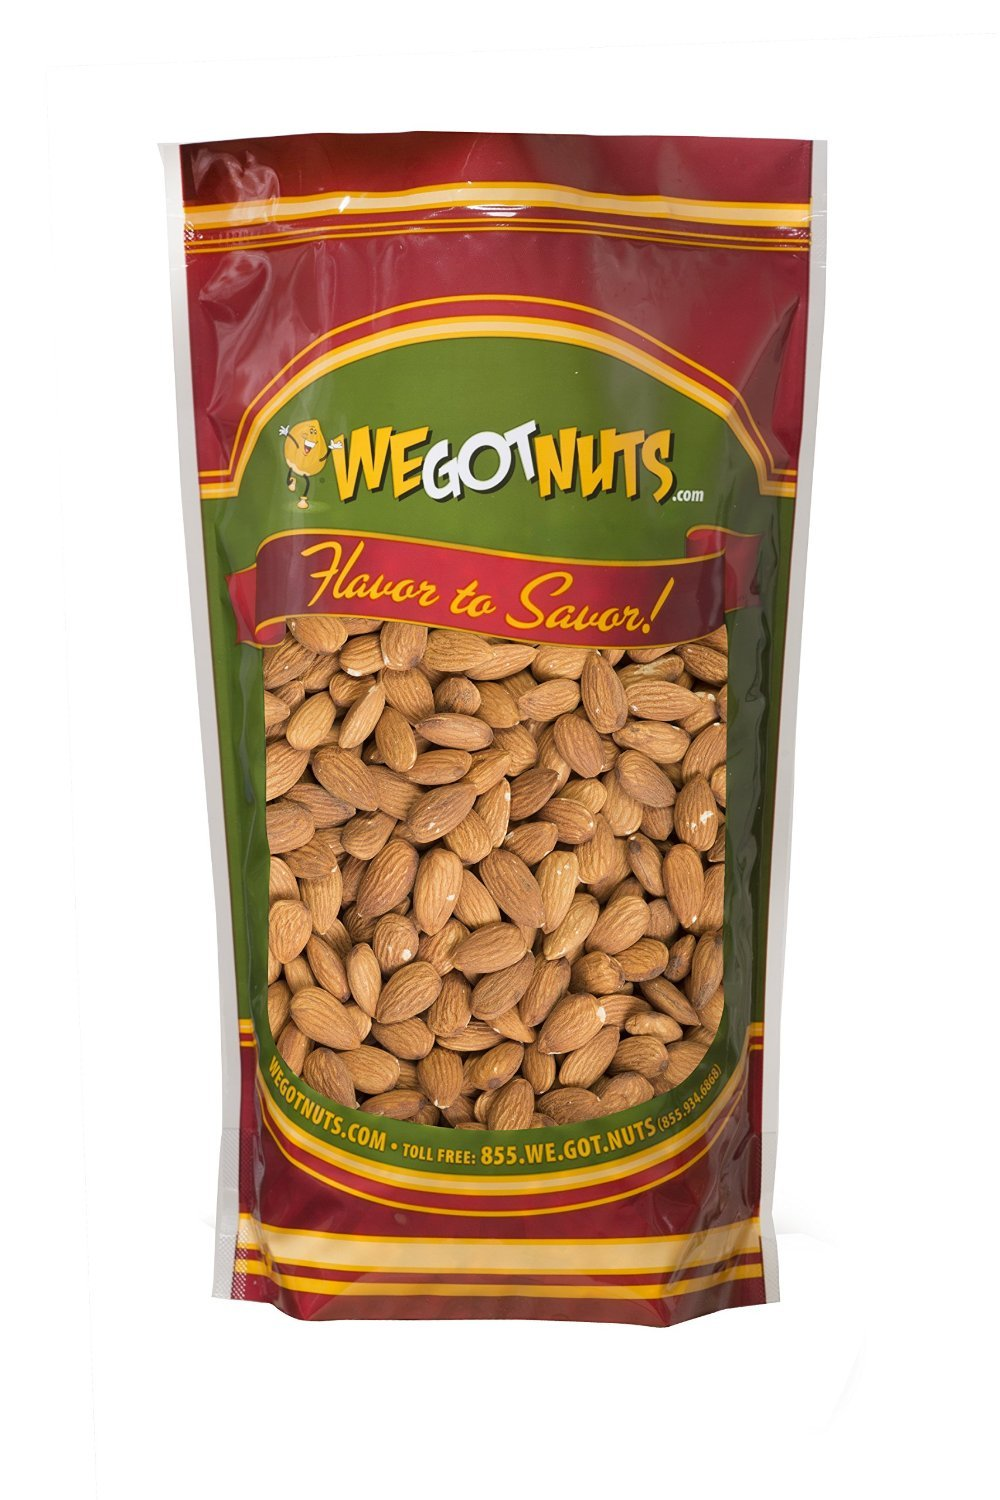 We Got Nuts Jumbo Almonds (Whole, Raw, Shelled, Unsalted) (4 Pounds)